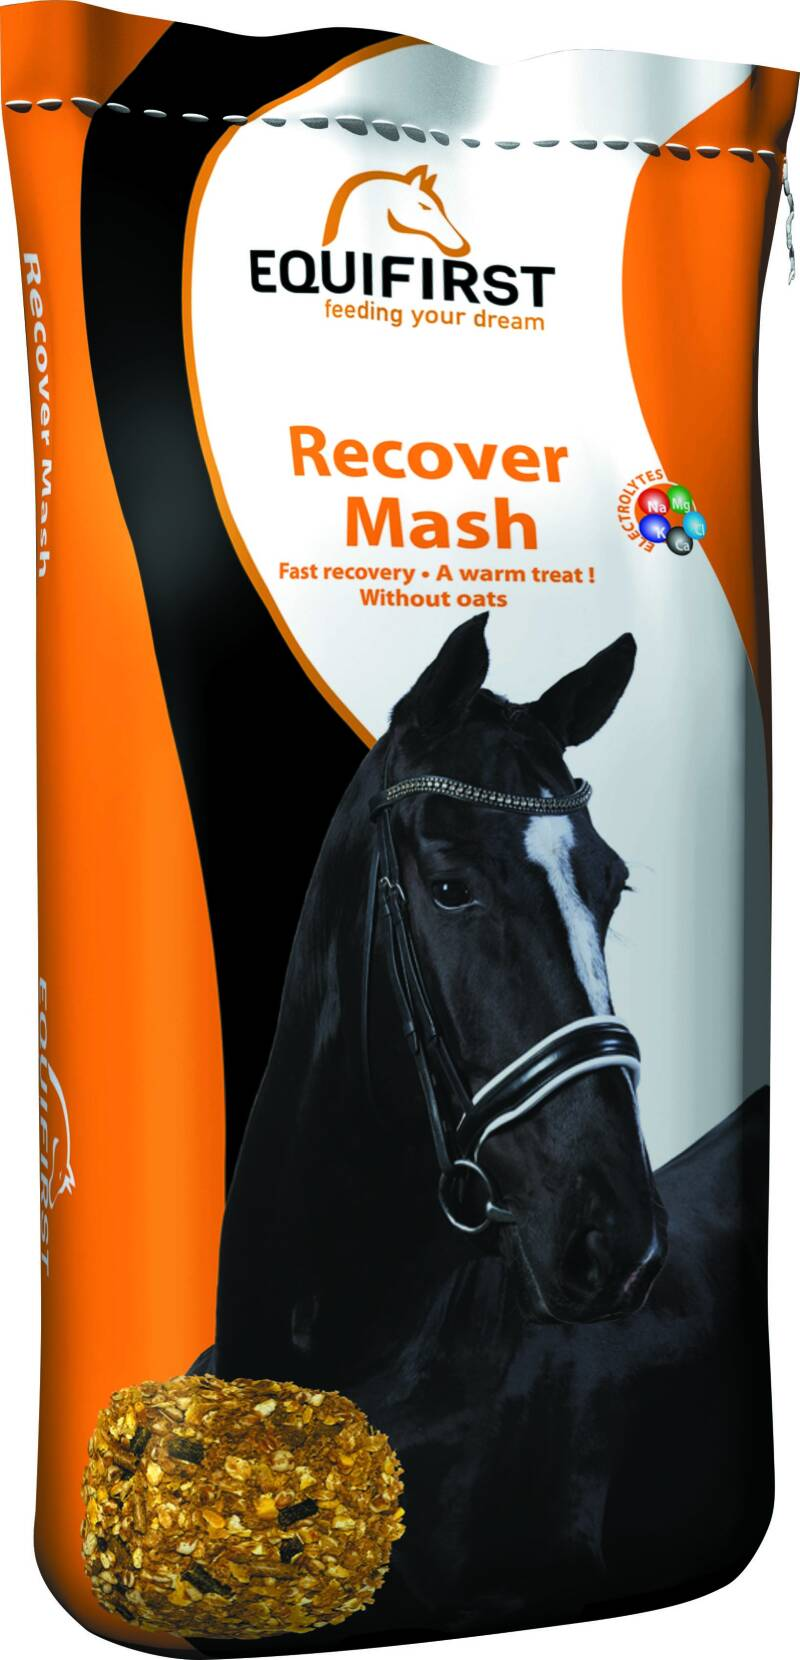 Equifirst Recovery Mash